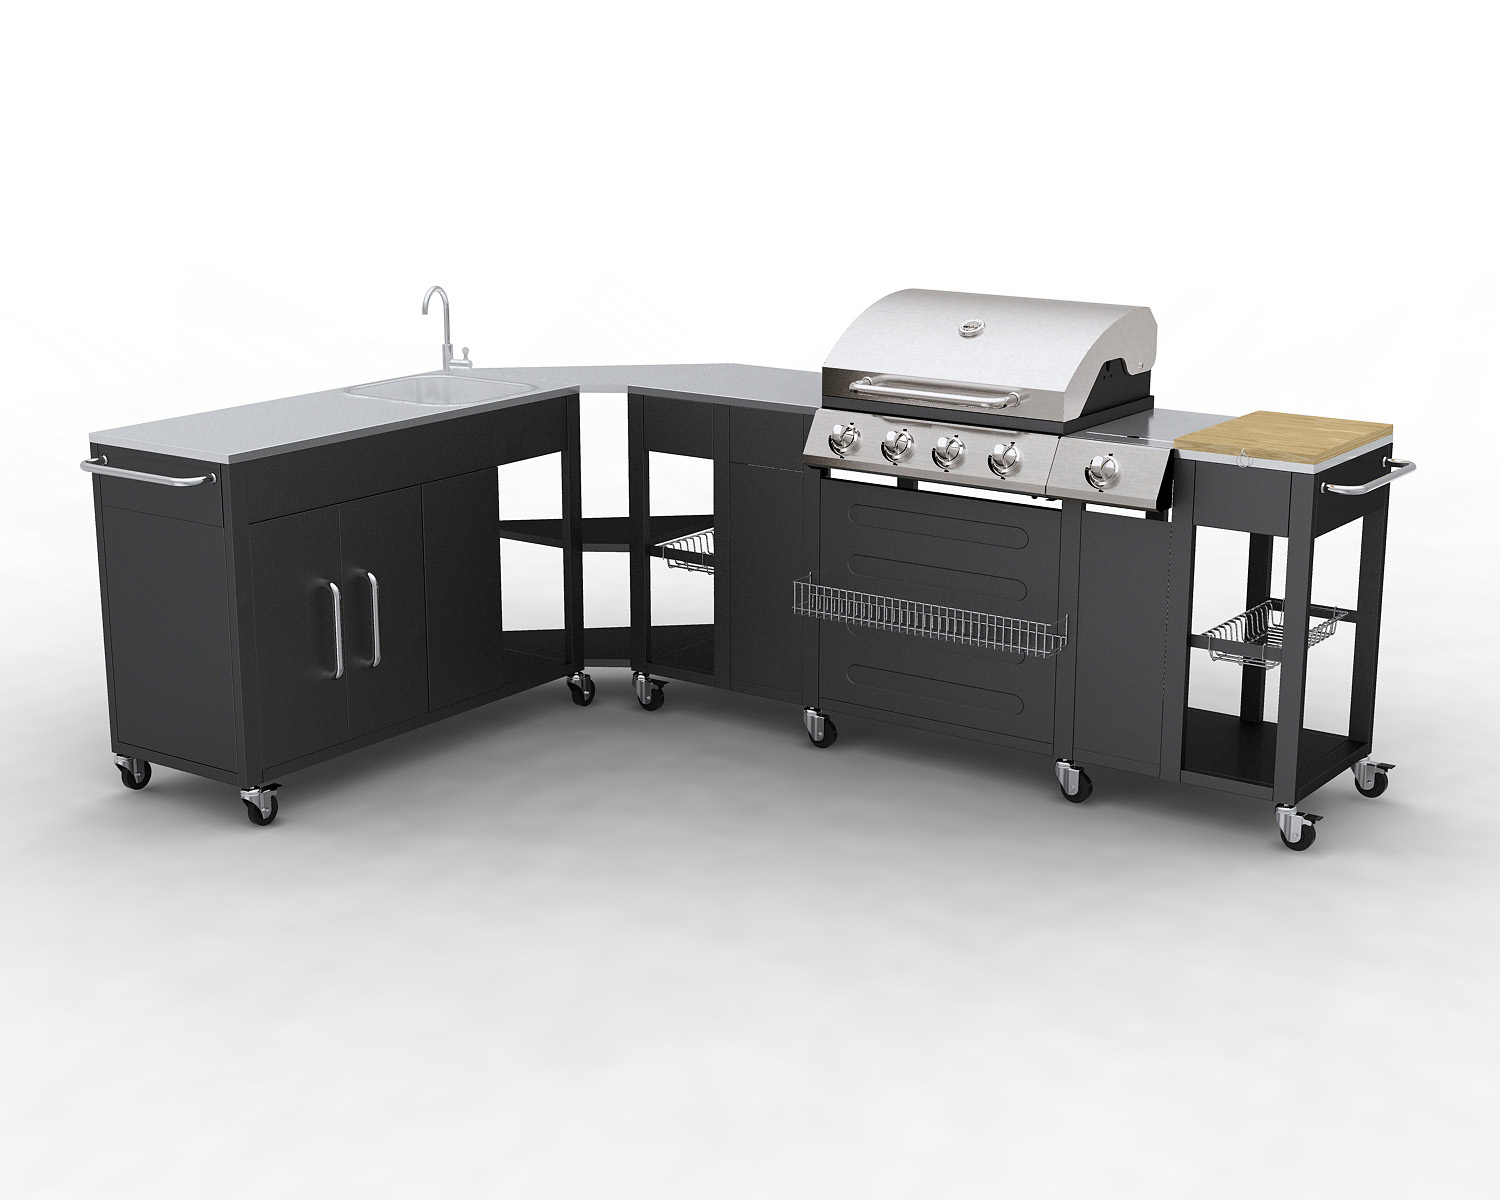 Barbecue gaz inox grand meuble cuisine exterieur for Four barbecue exterieur